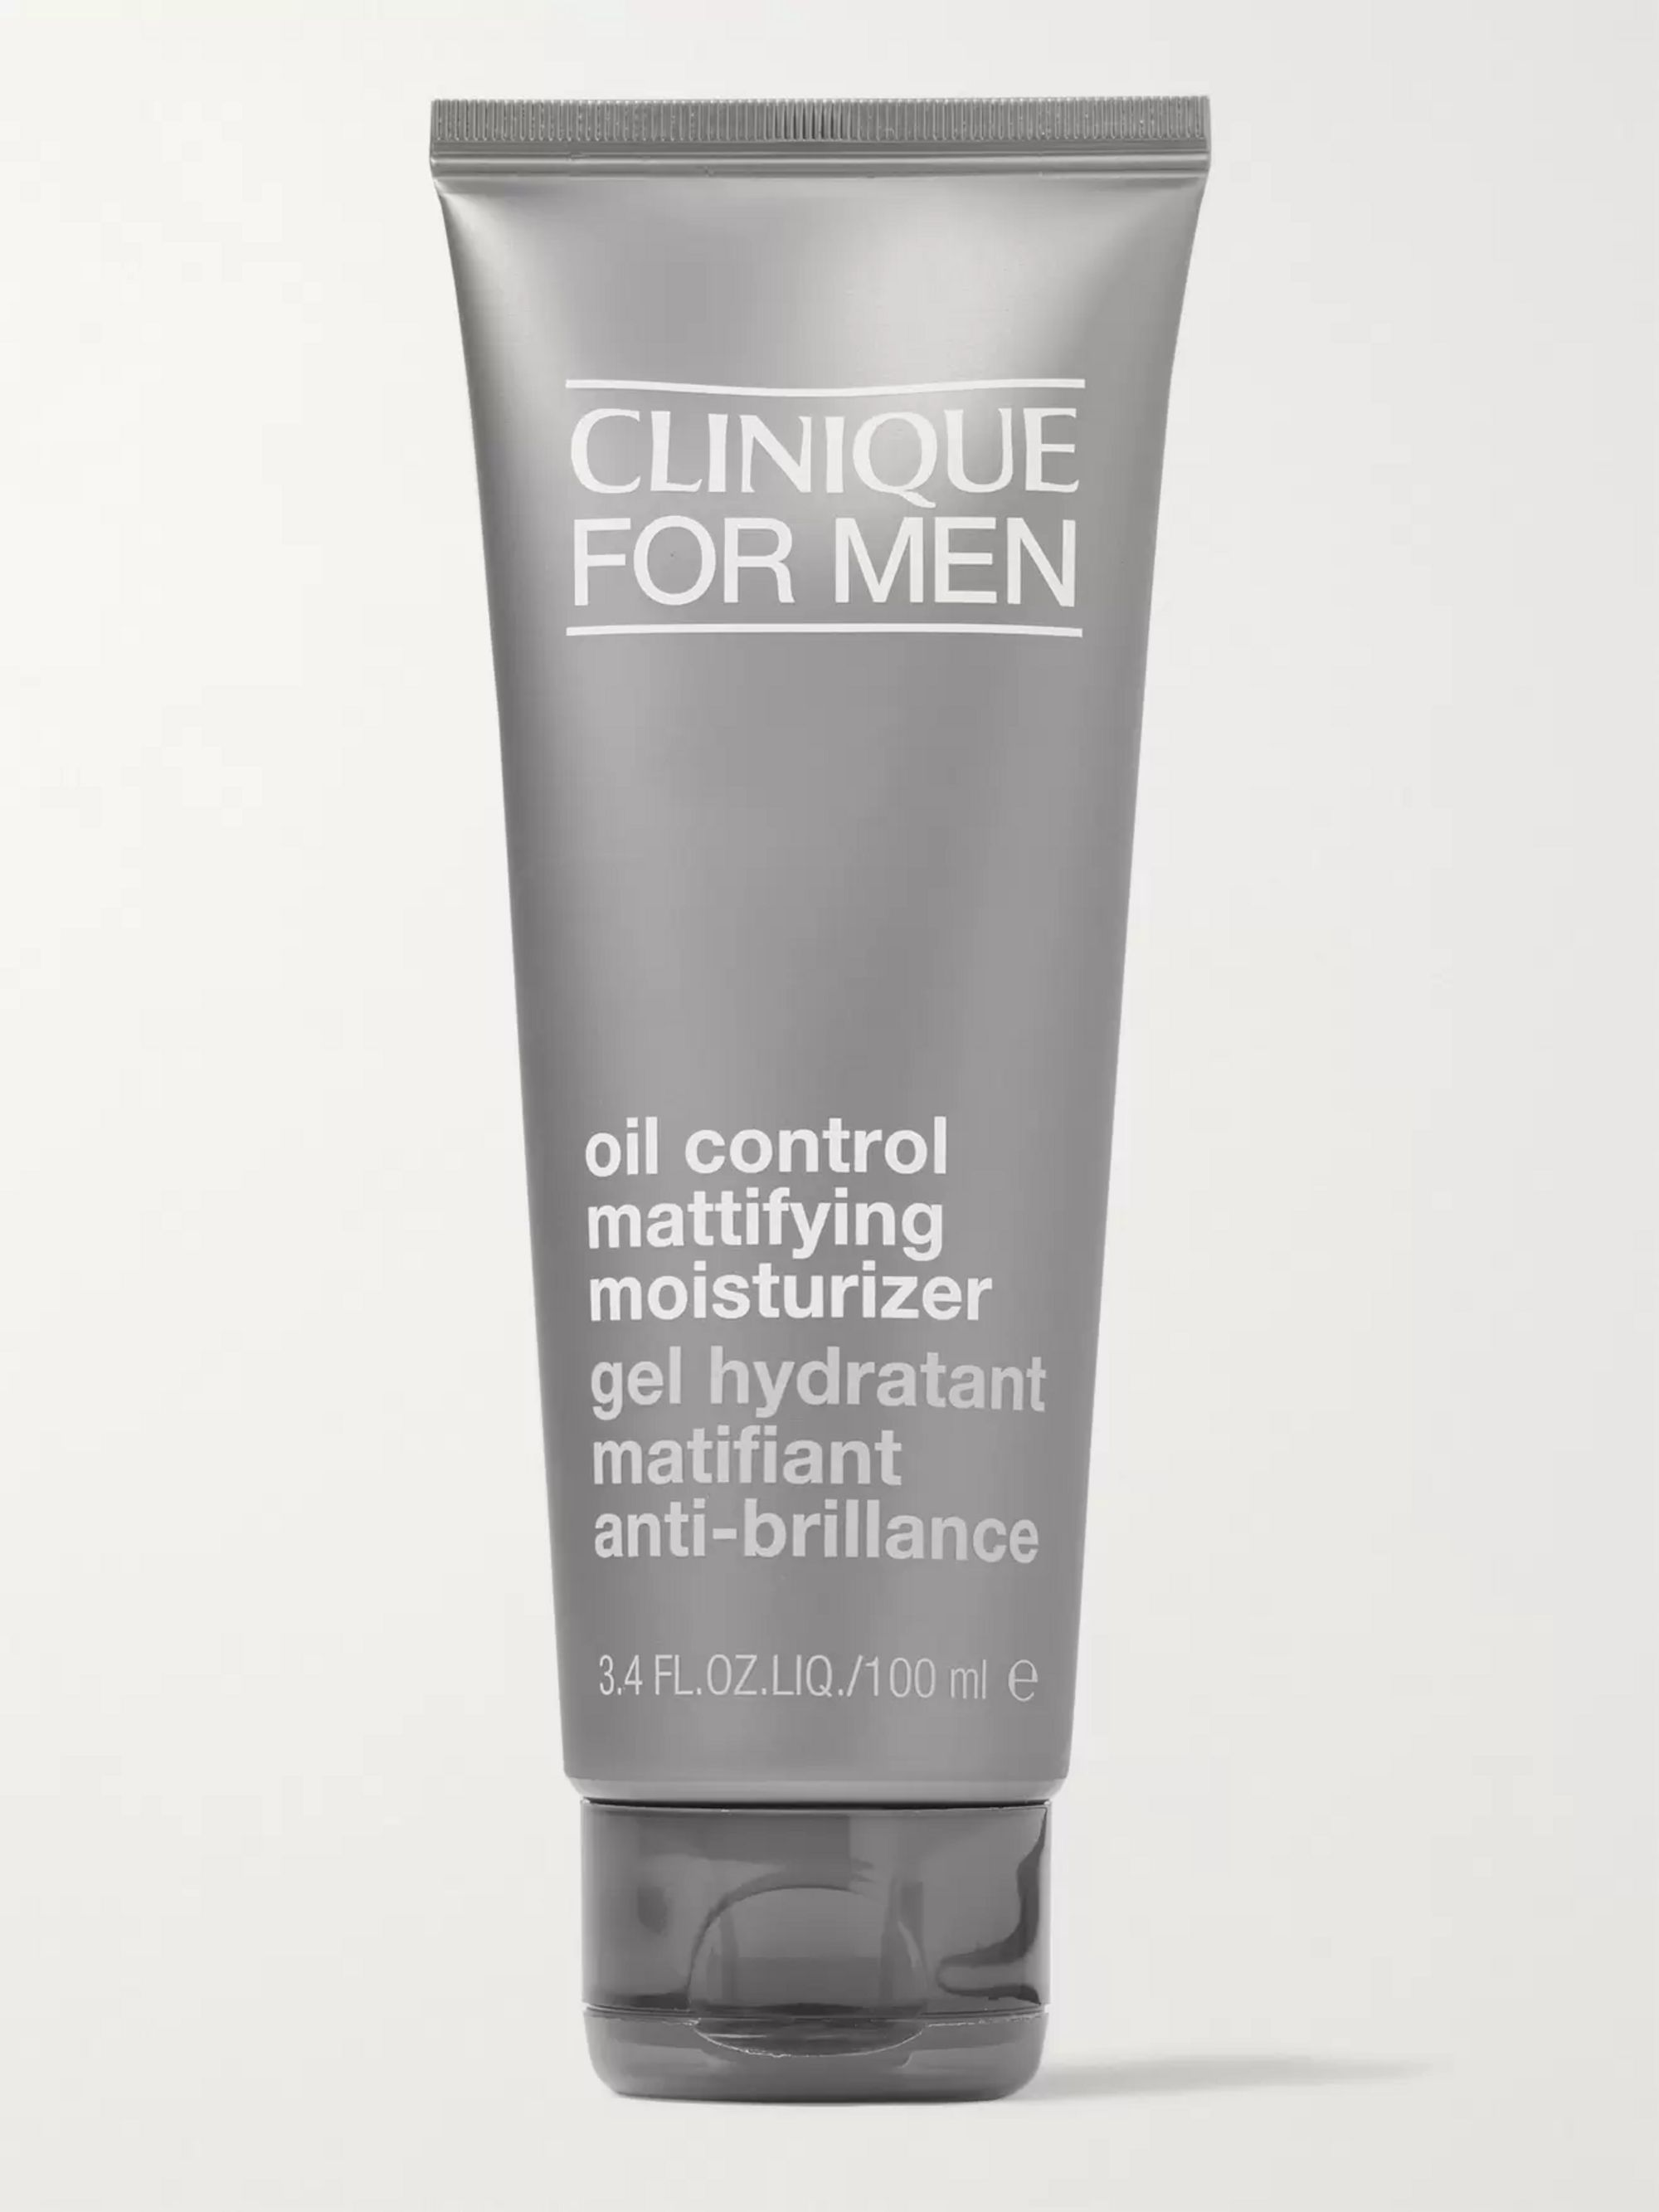 Clinique For Men Oil Control Mattifying Moisturizer, 100ml